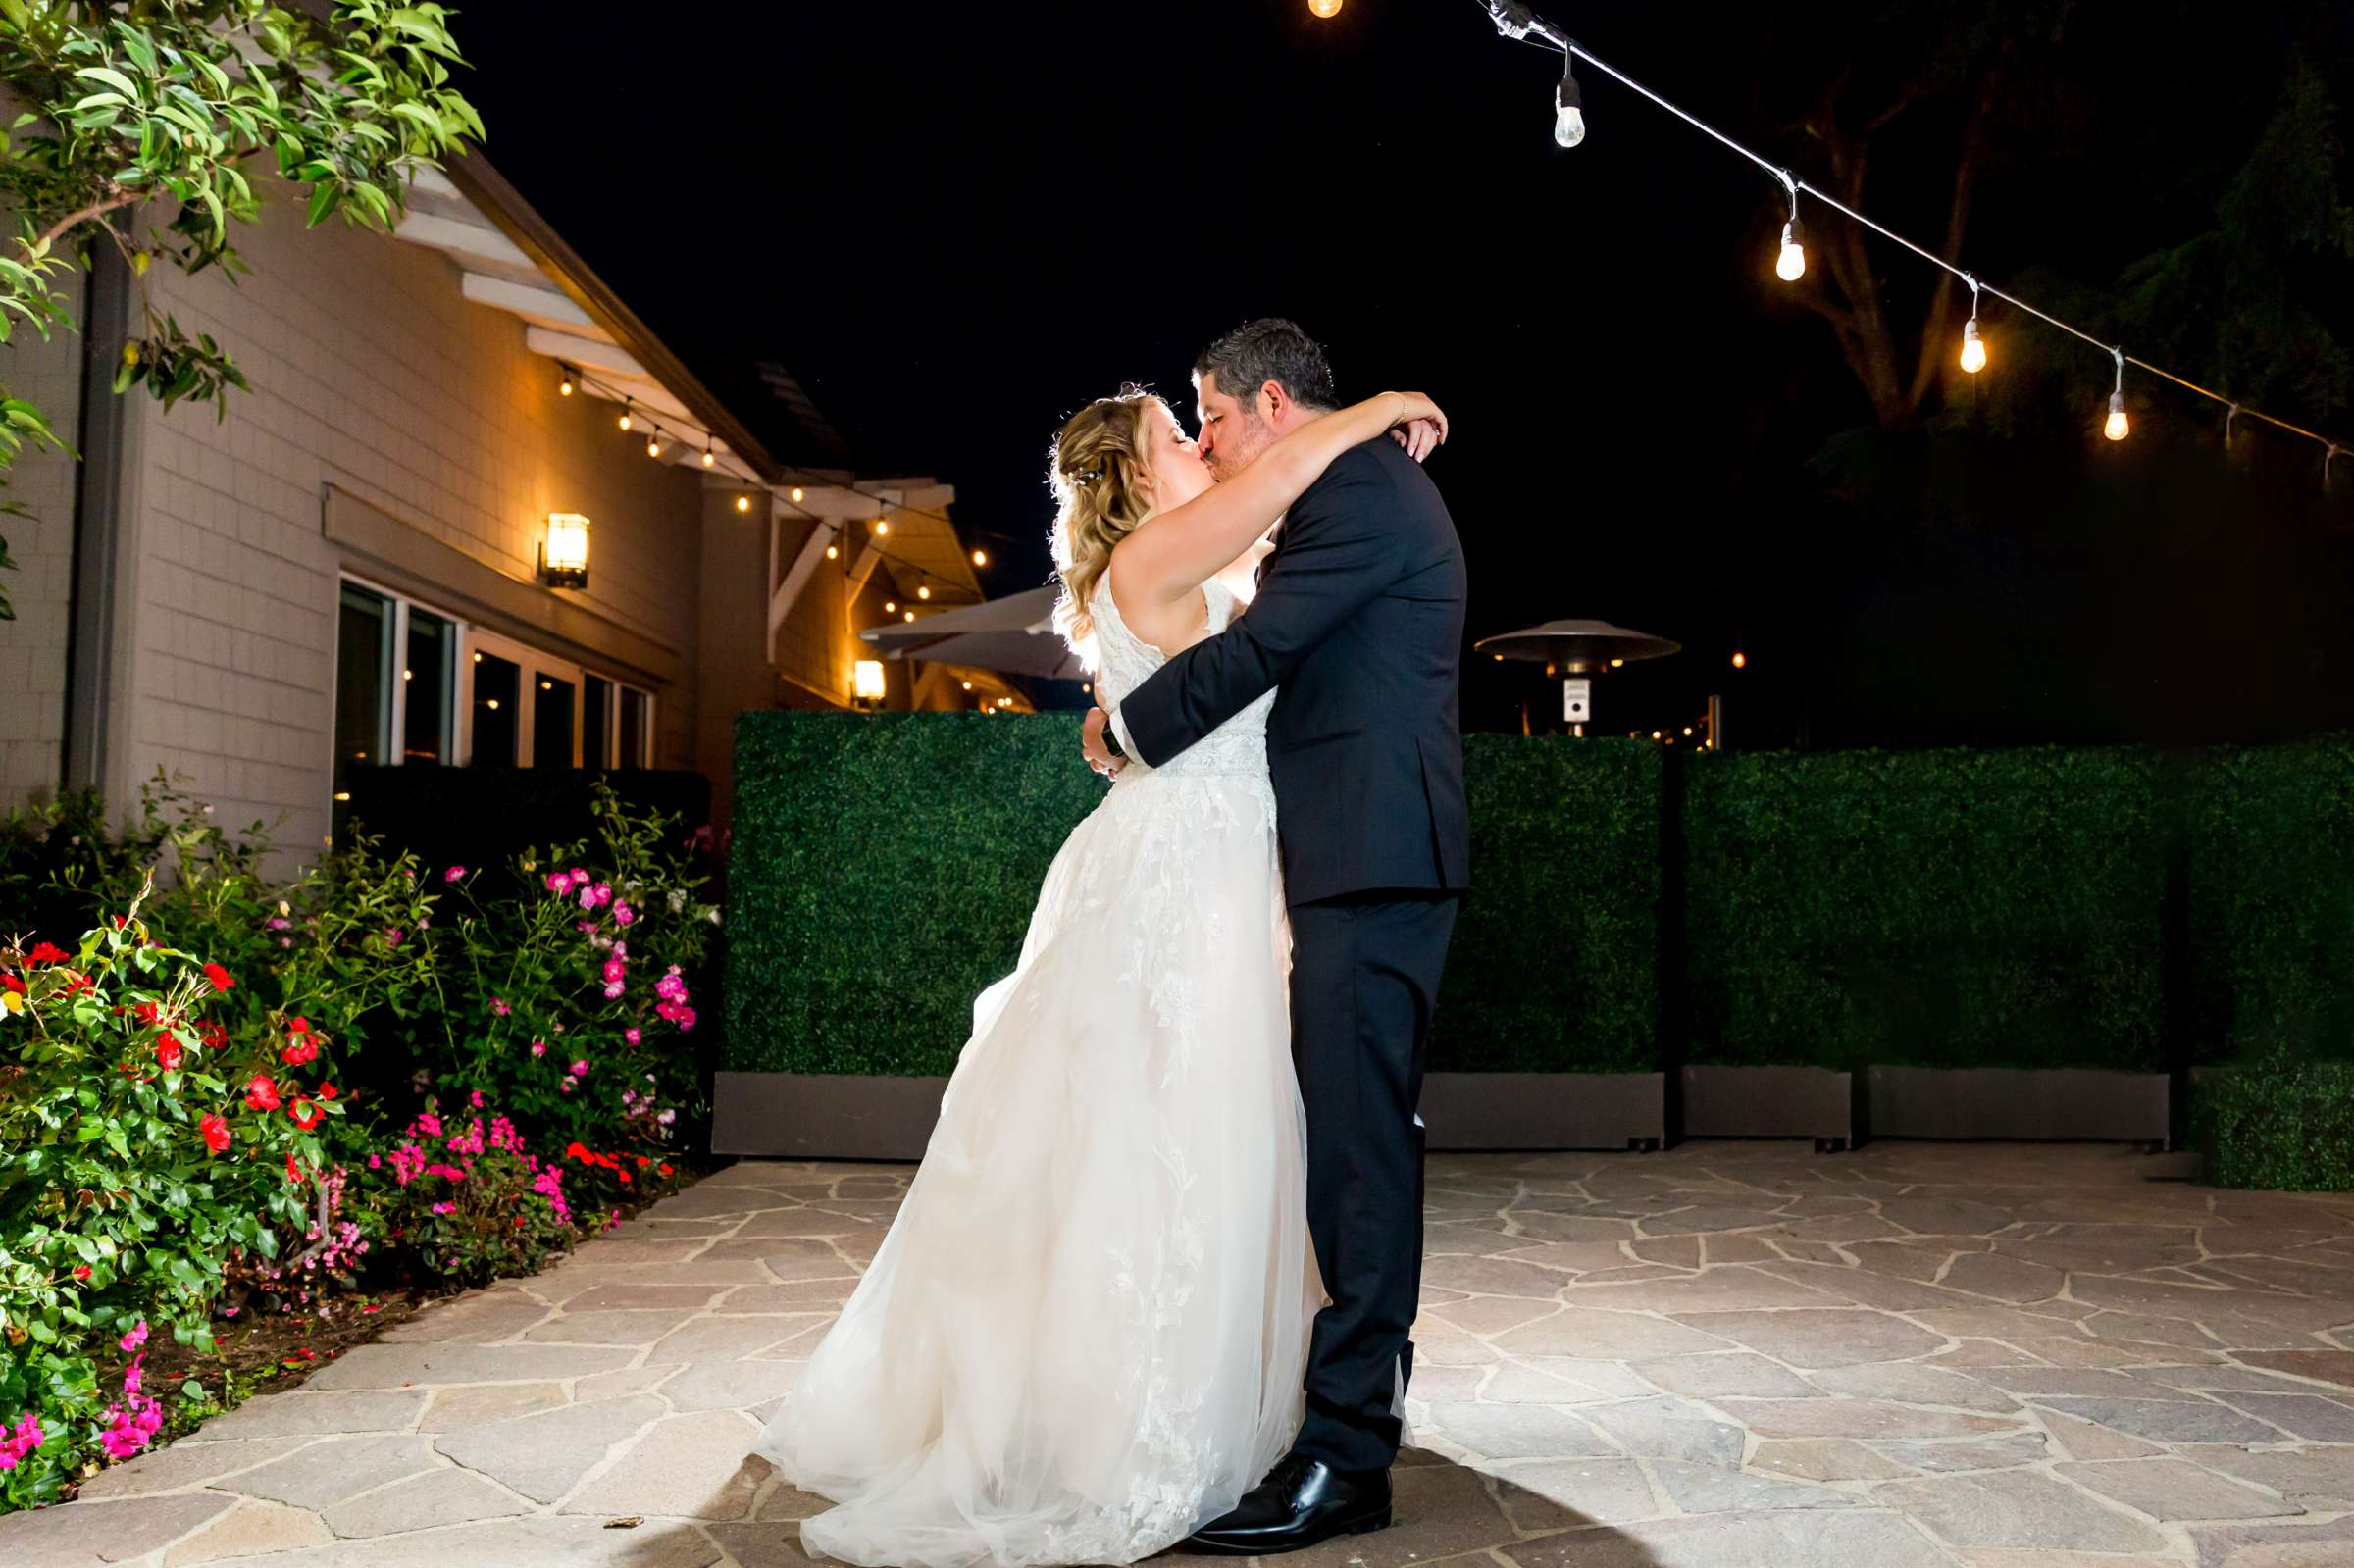 Cape Rey Carlsbad, A Hilton Resort Wedding, Michelle and Justin Wedding Photo #88 by True Photography